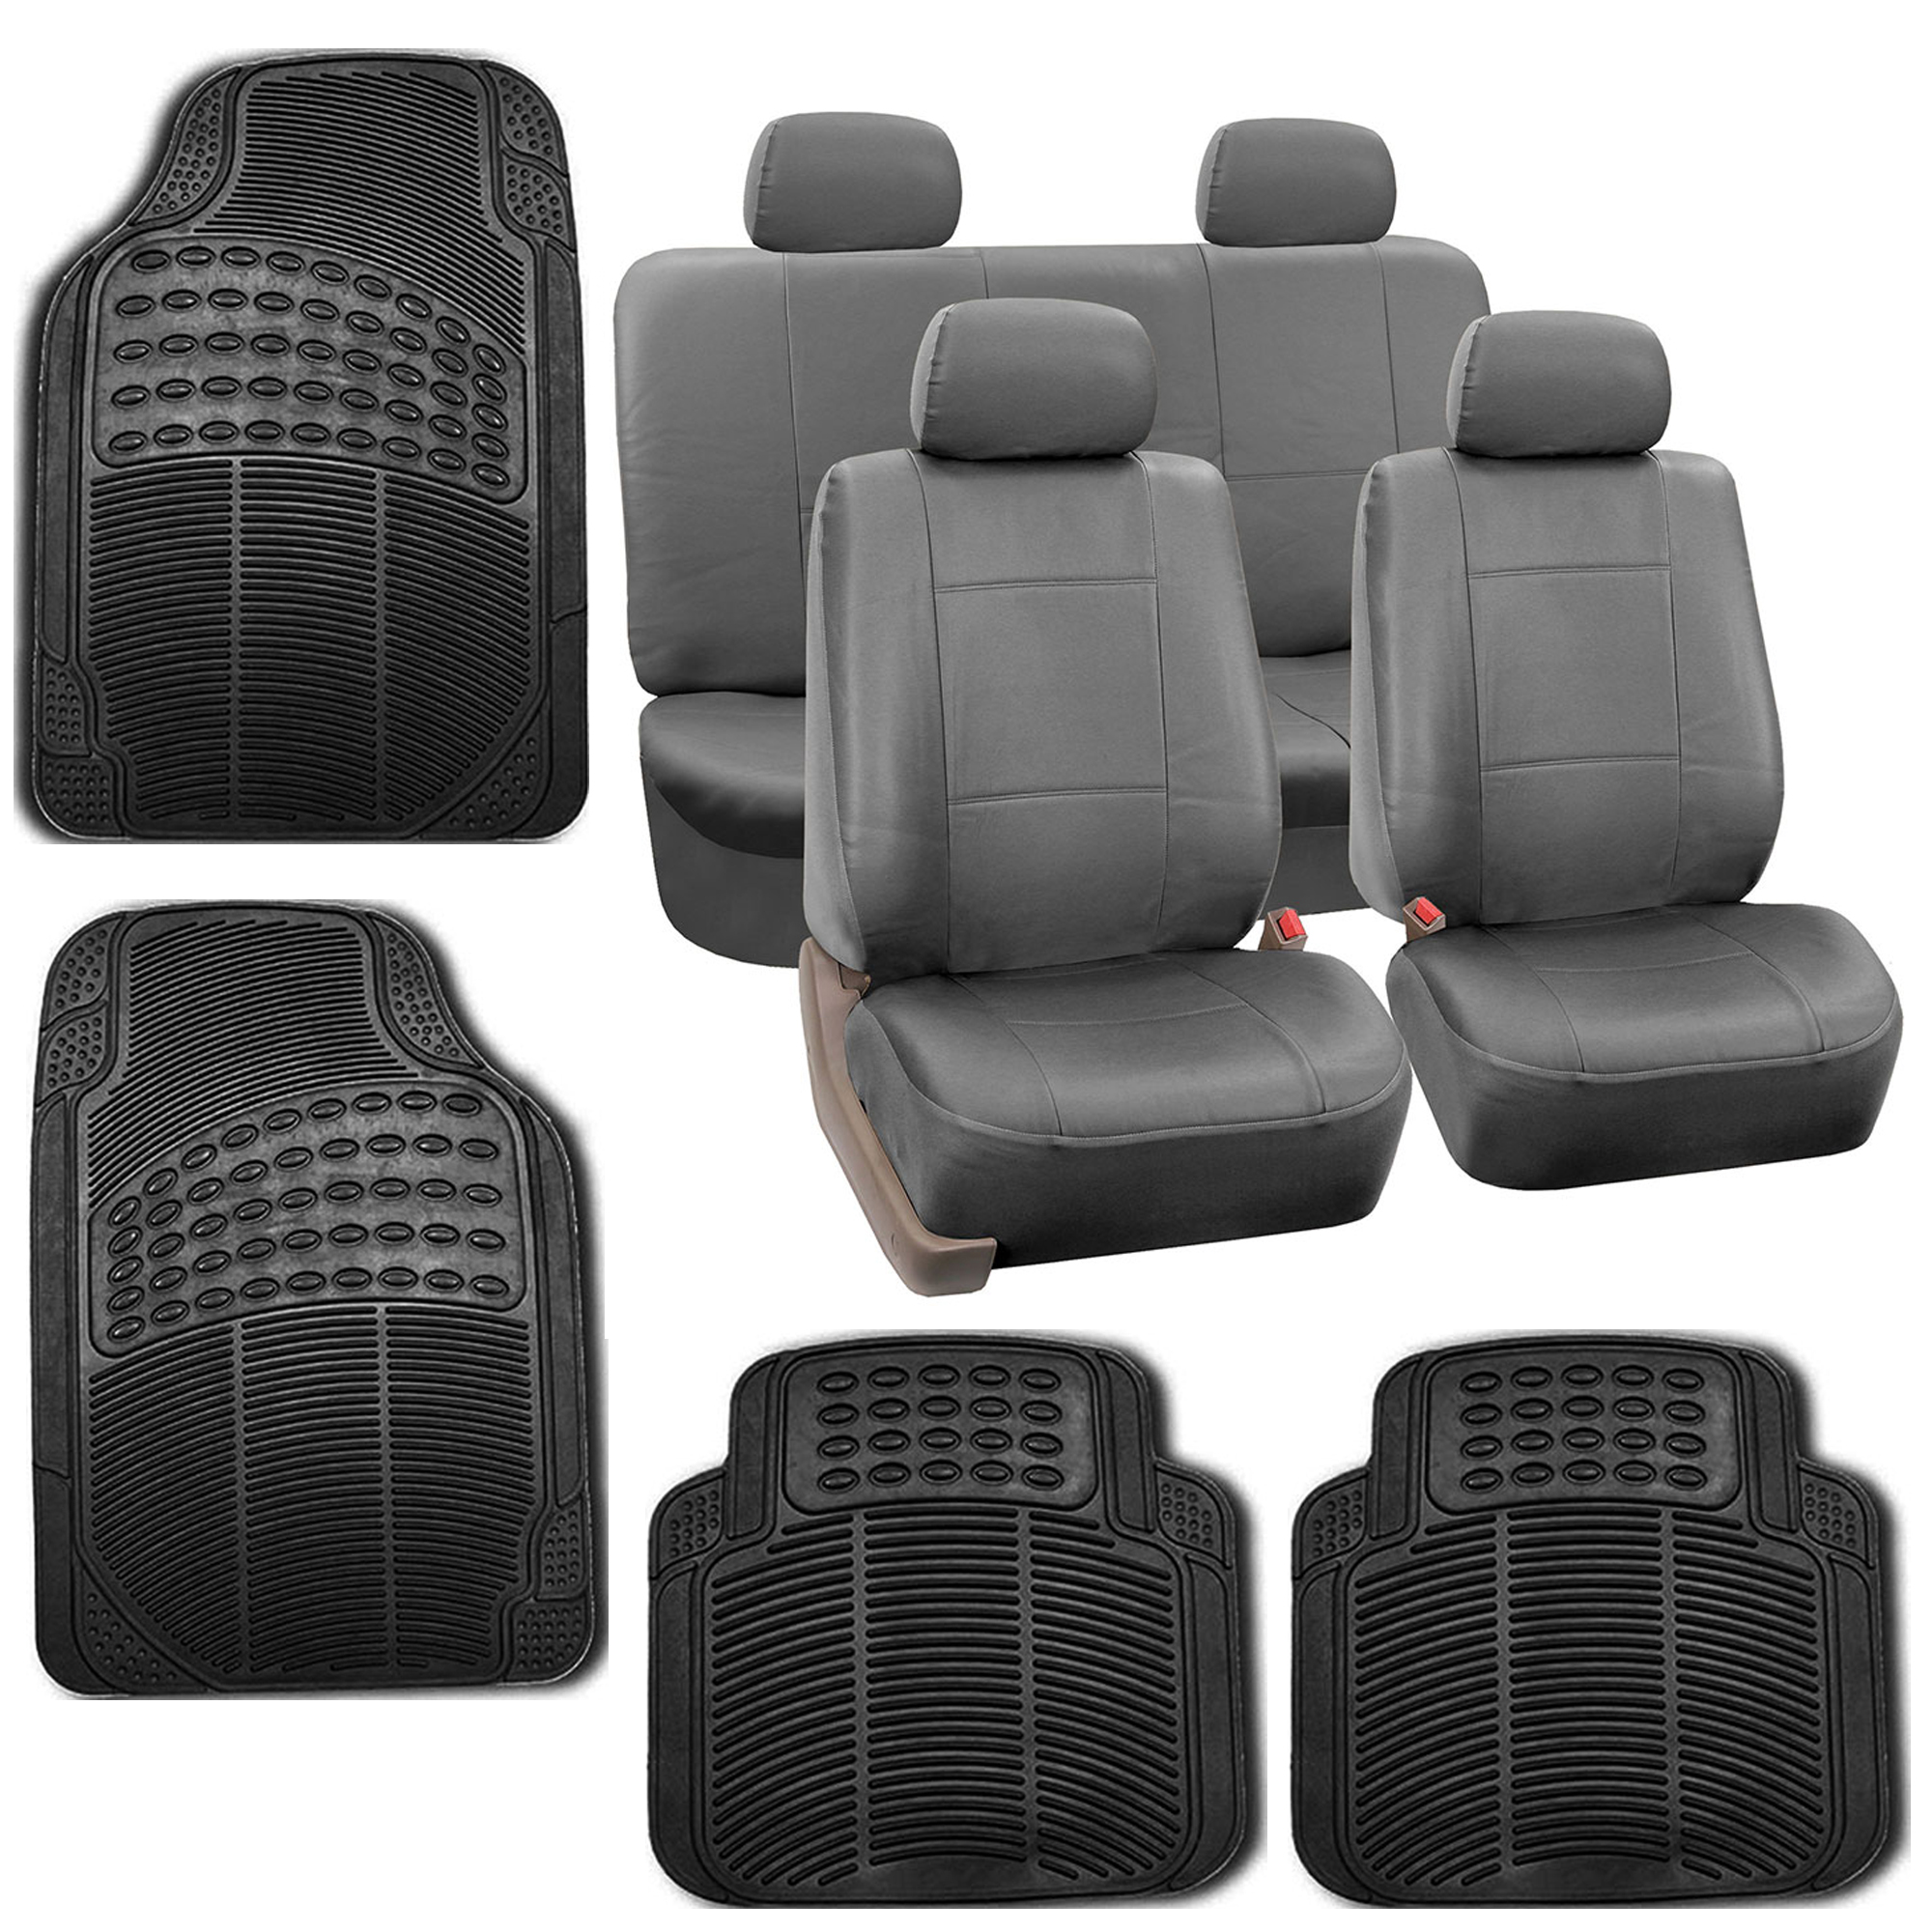 gray faux leather car seat cover set headrests floor mat set 800222115601 ebay. Black Bedroom Furniture Sets. Home Design Ideas